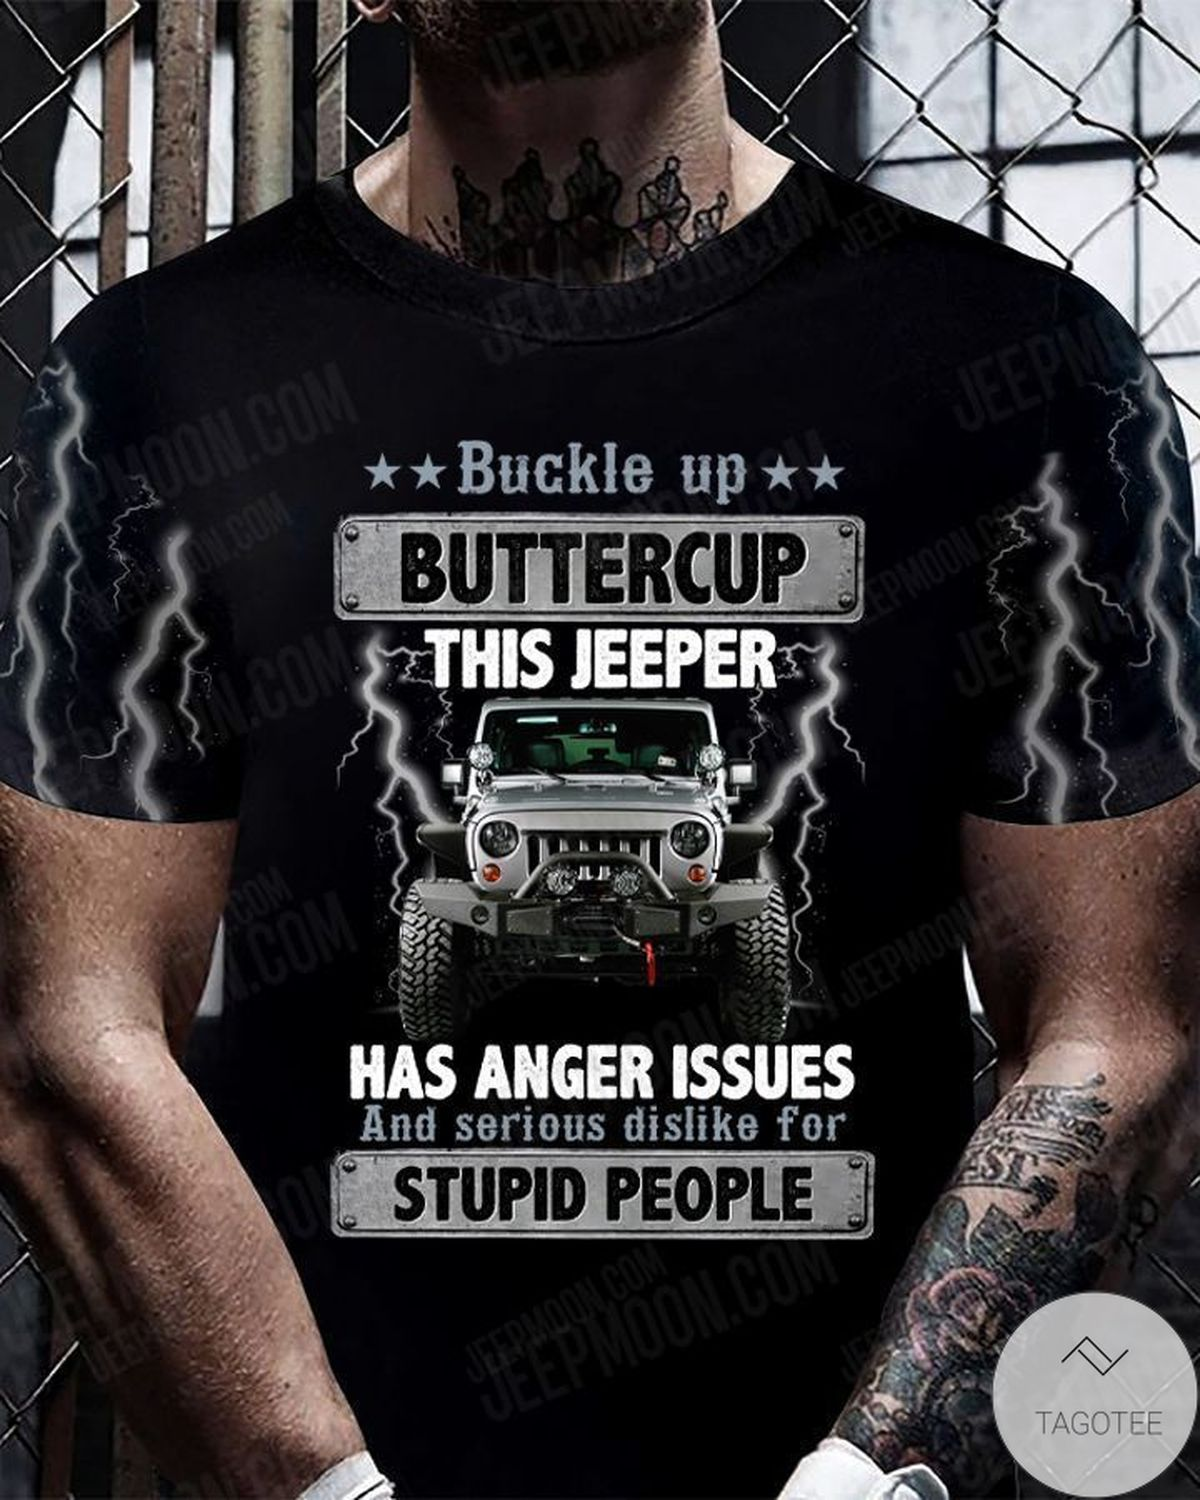 Funny Tee Buckle Up Buttercup This Jeeper Has Anger Issues T-Shirt